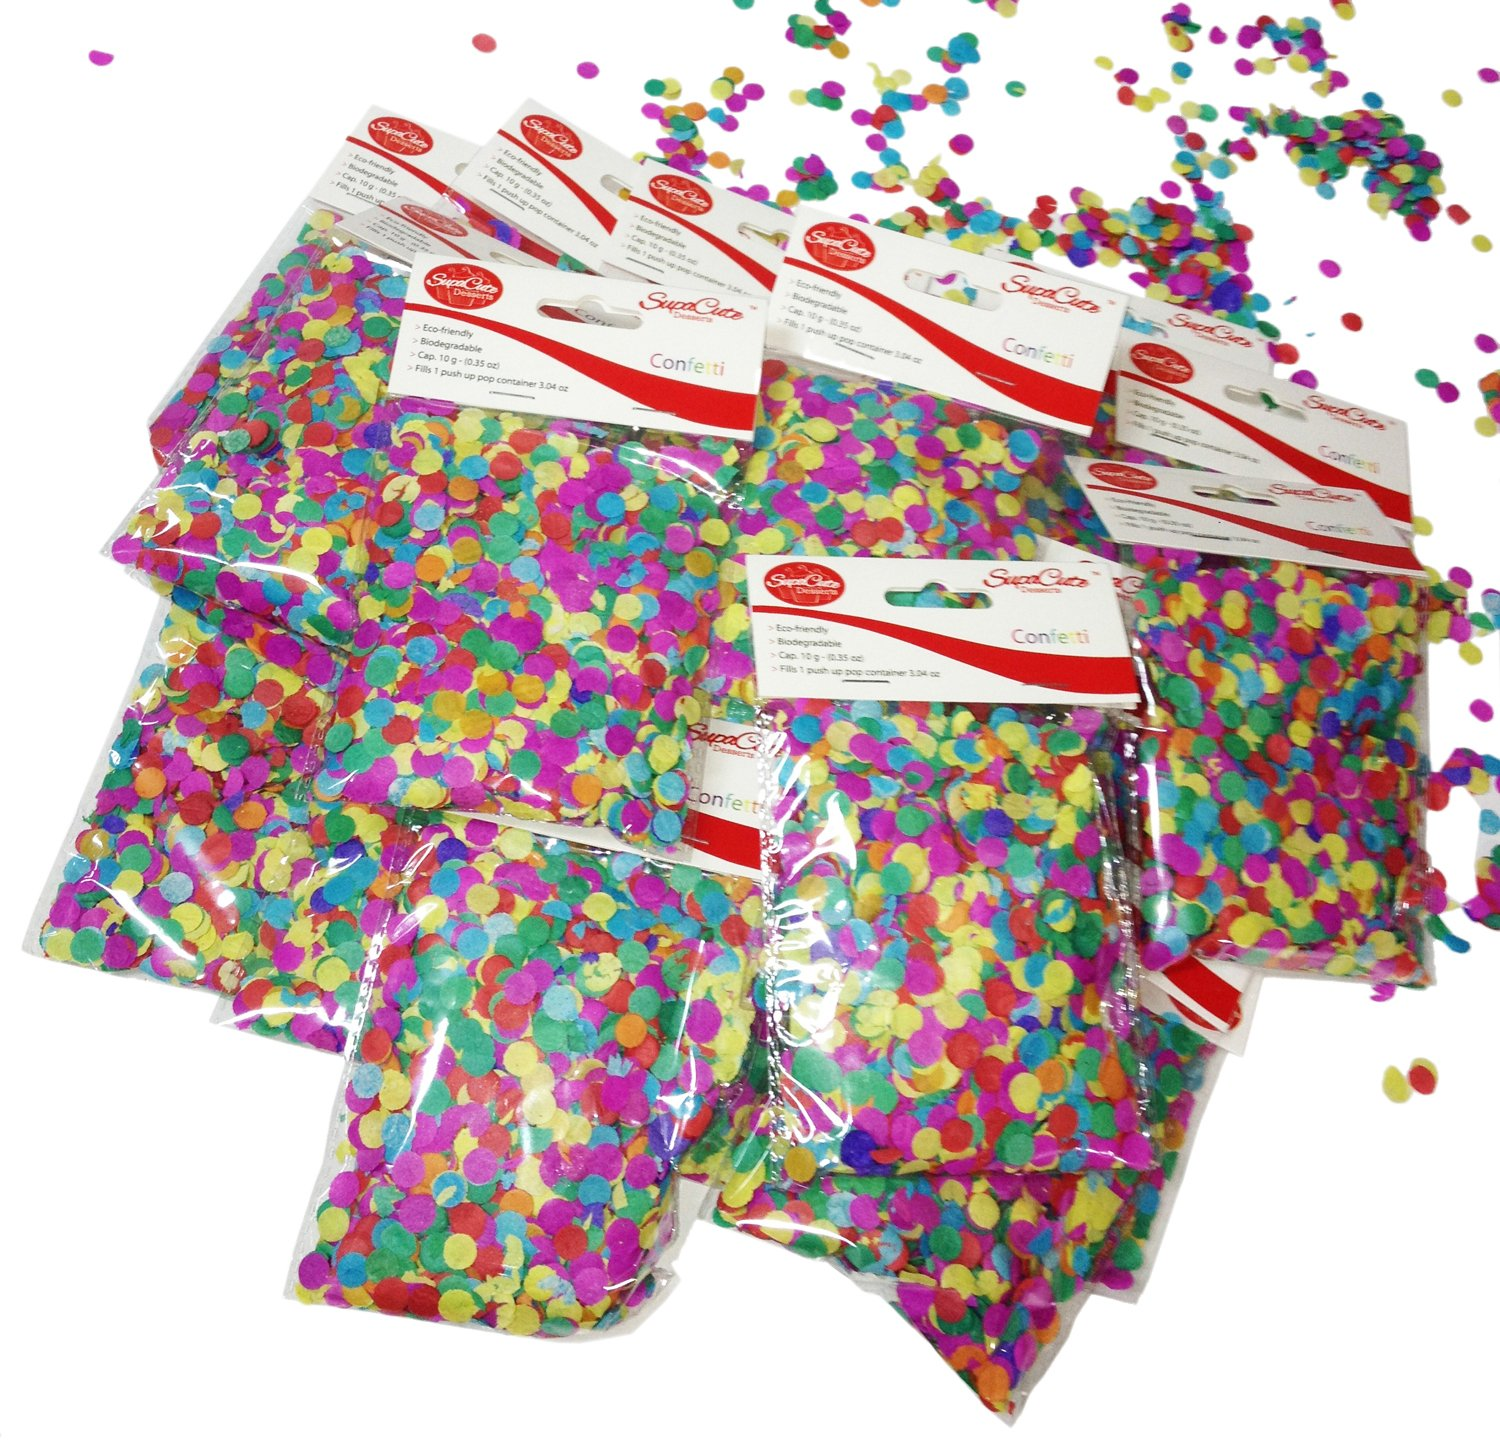 SupaCute Birthday Party Paper Confetti - 16 Bags by SupaCute Desserts